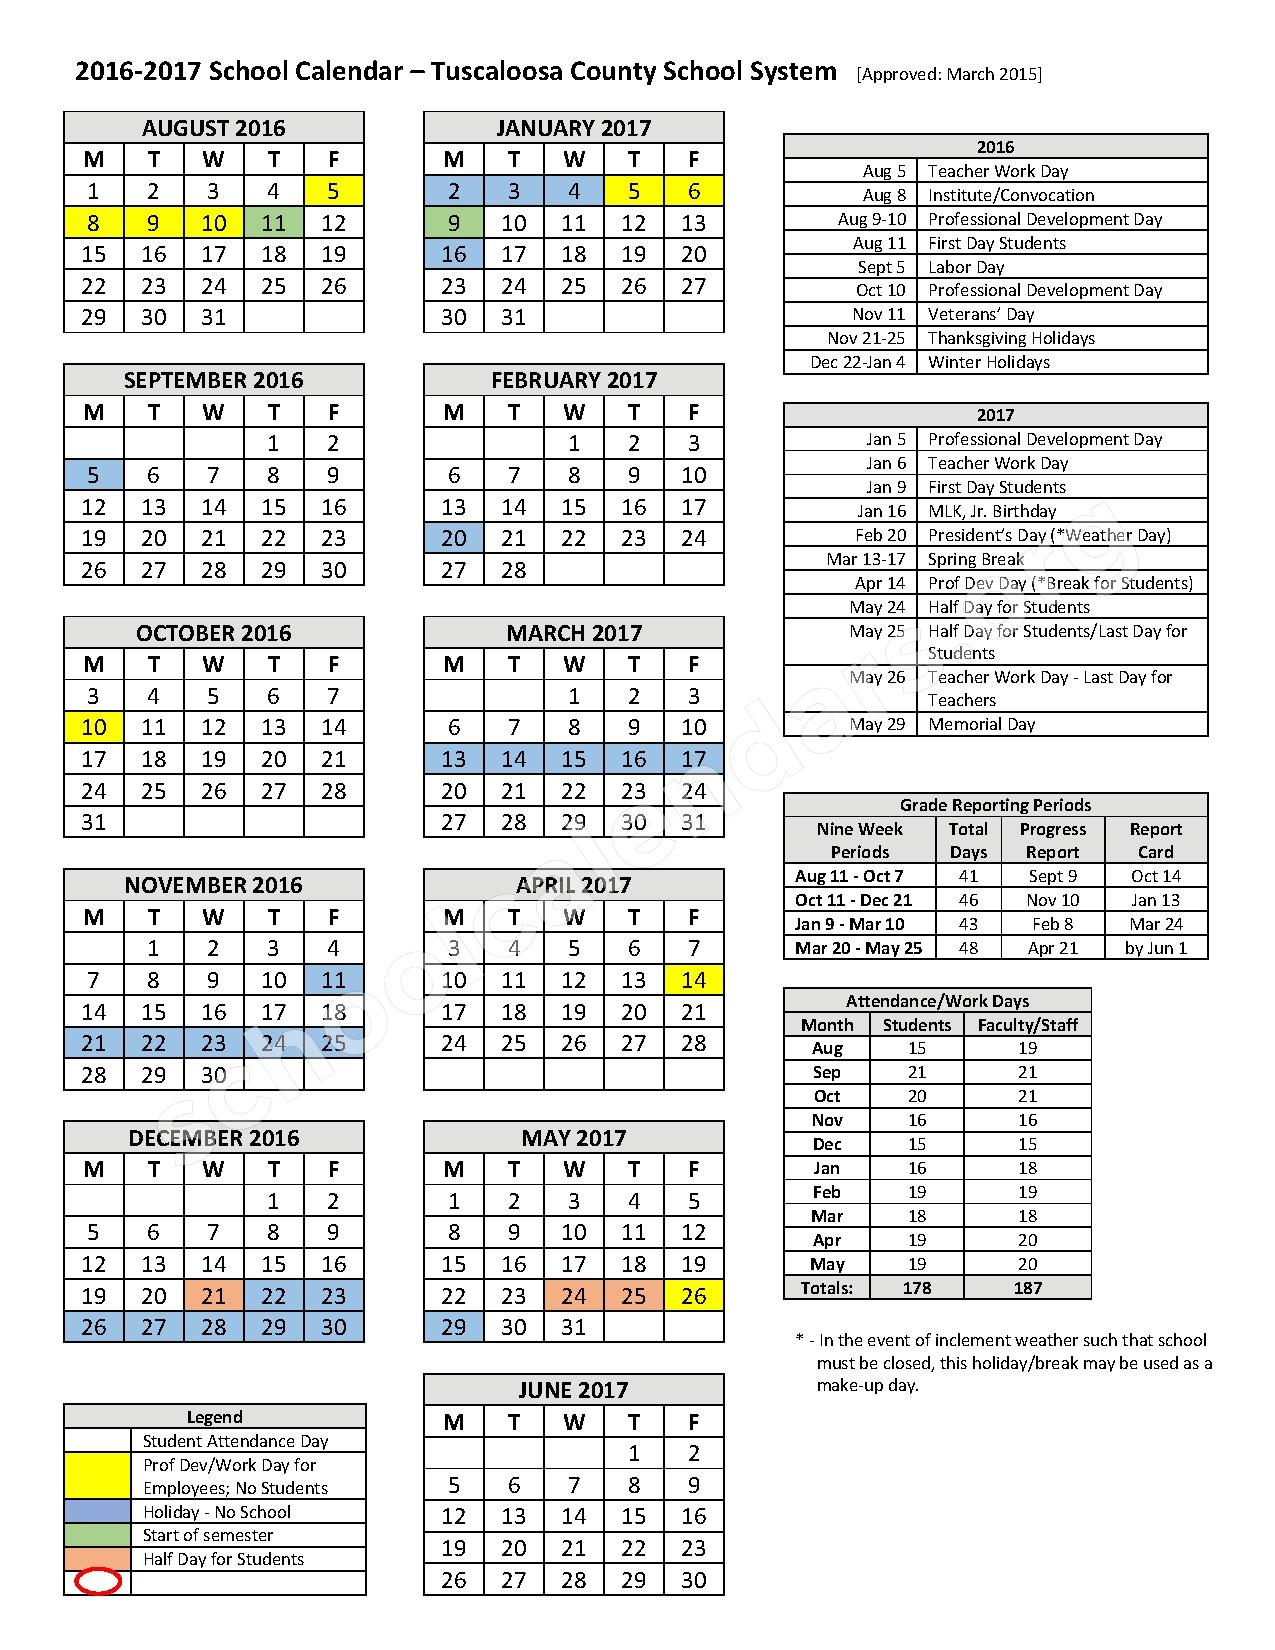 2016 - 2017 TCSS Calendar – Collins-Riverside Middle School – page 1